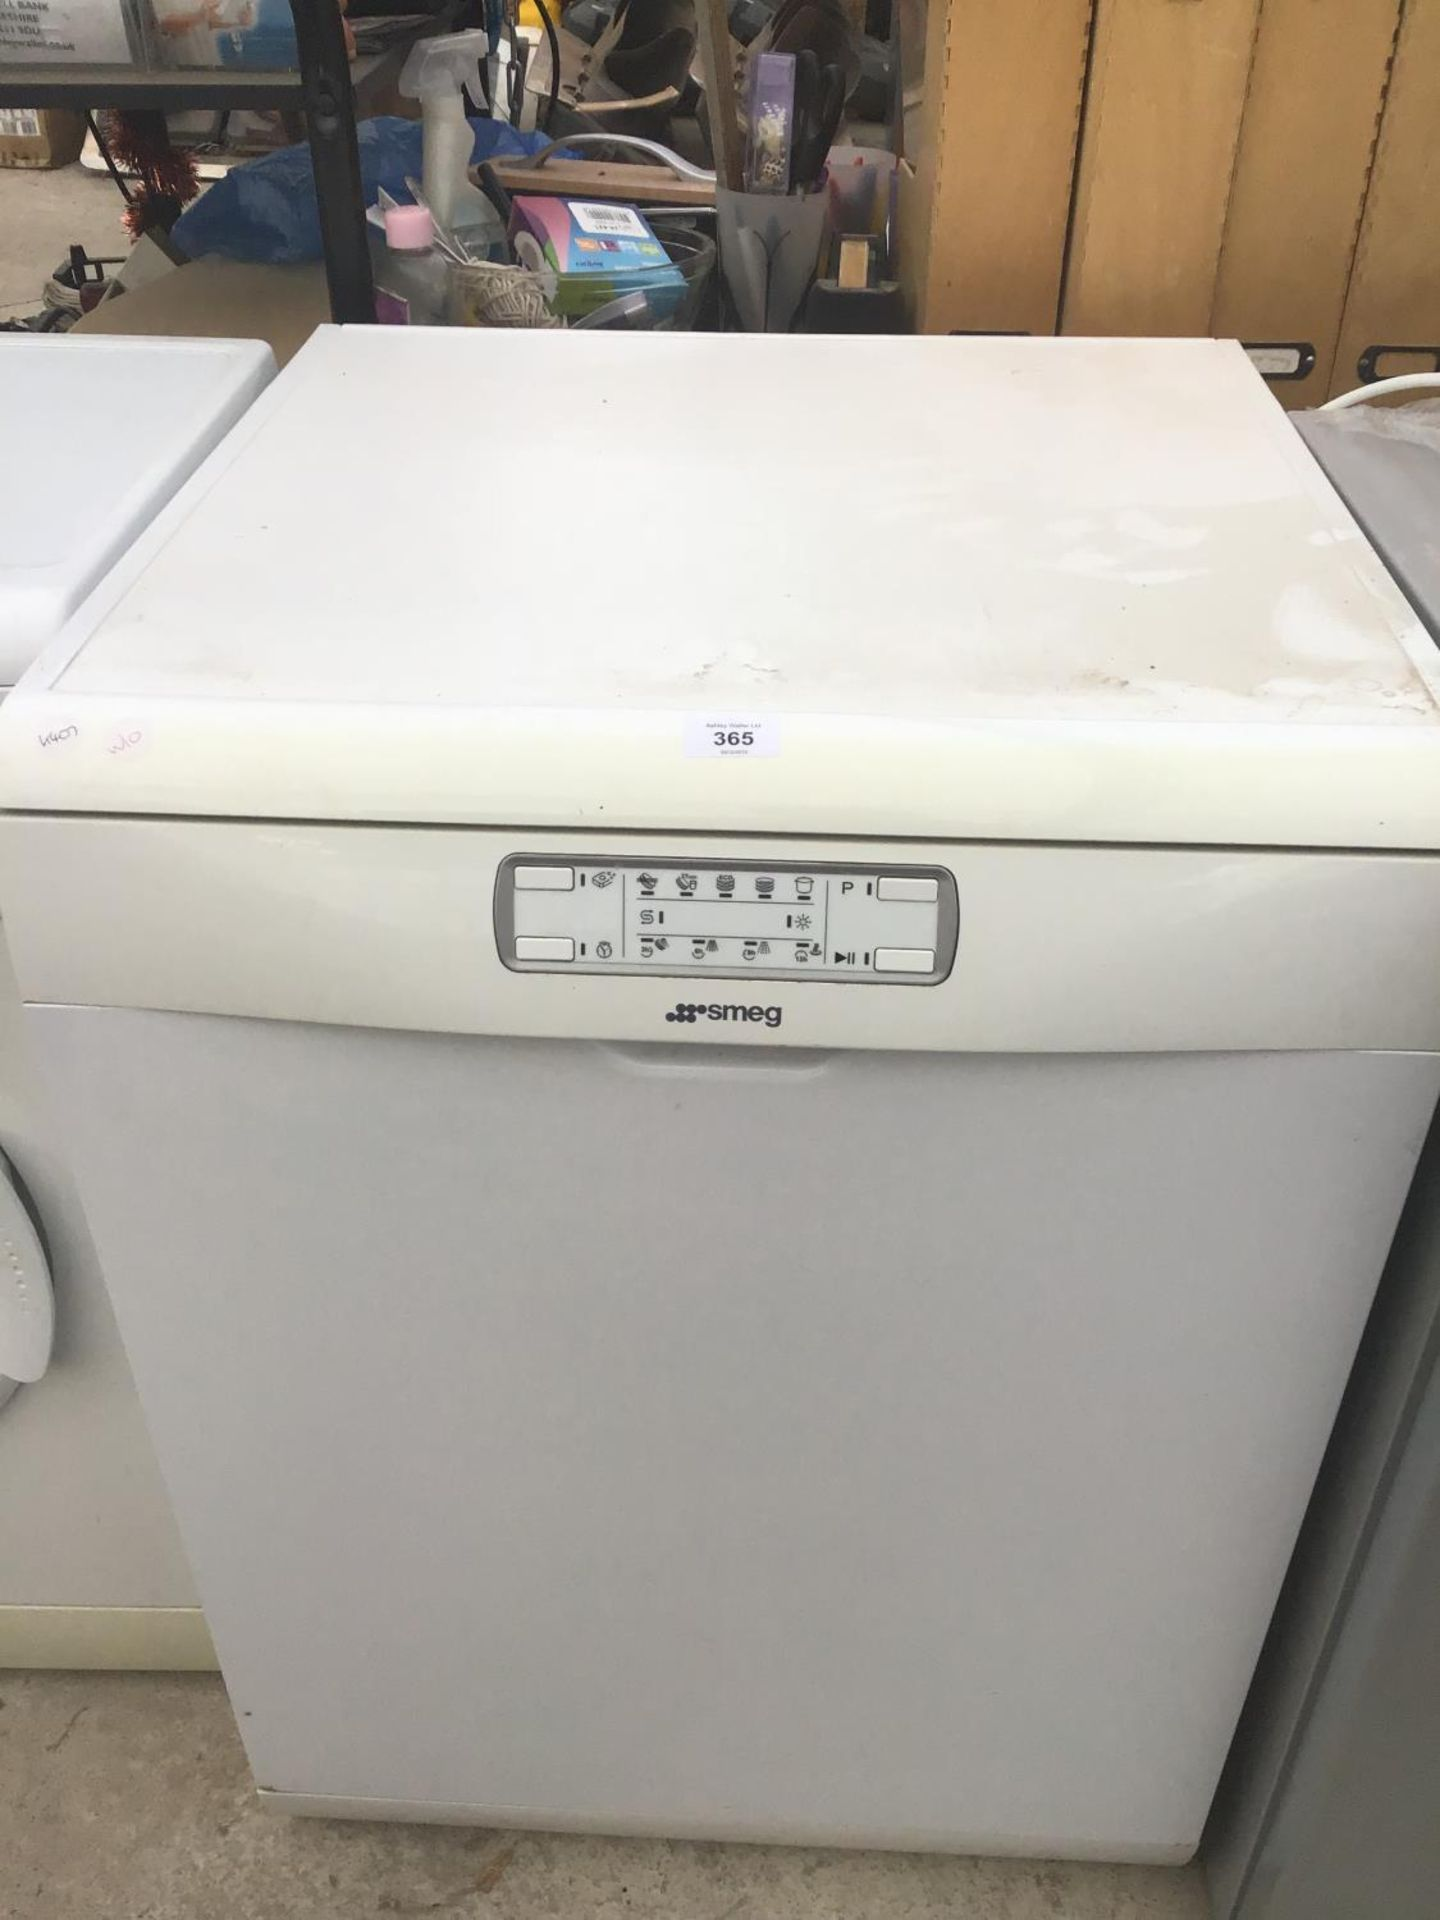 Lot 365 - A SMEG DISHWASHER IN CLEAN AND WORKING ORDER